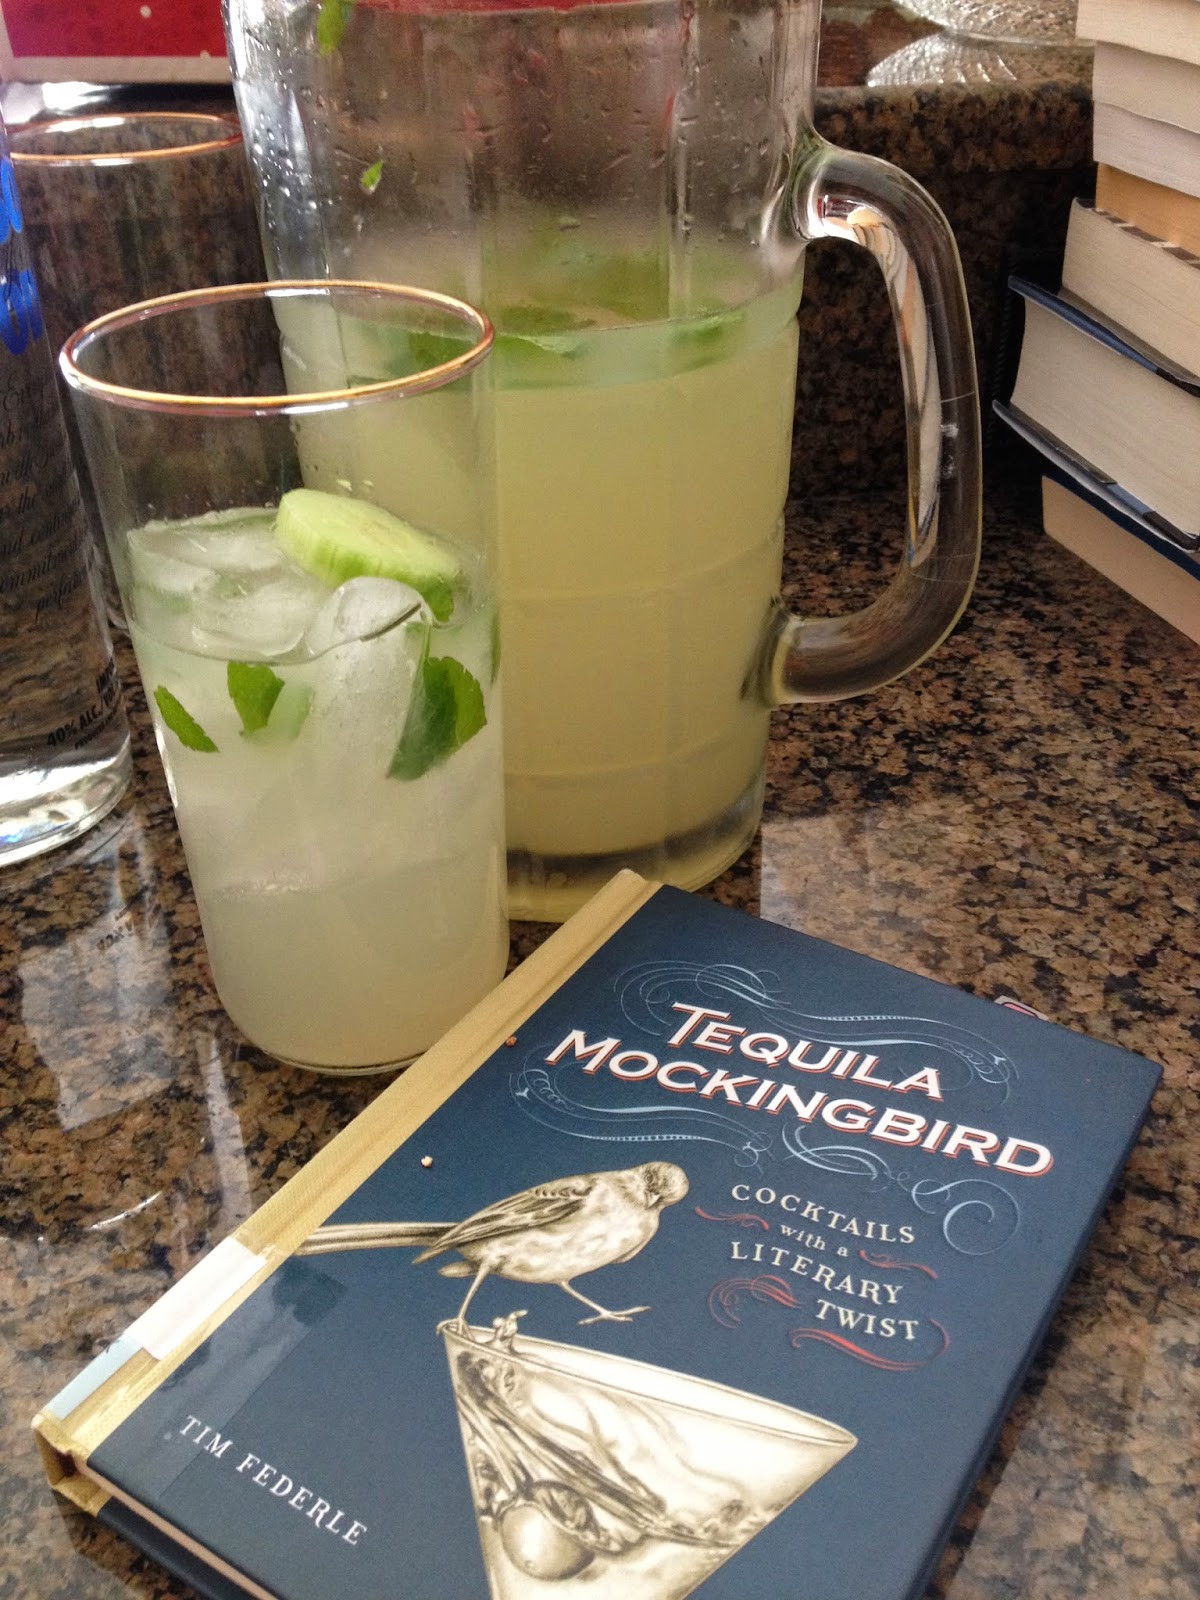 Tequila Mockingbird Drinks  Lakeside Musing Tequila Mockingbird Cocktails with a